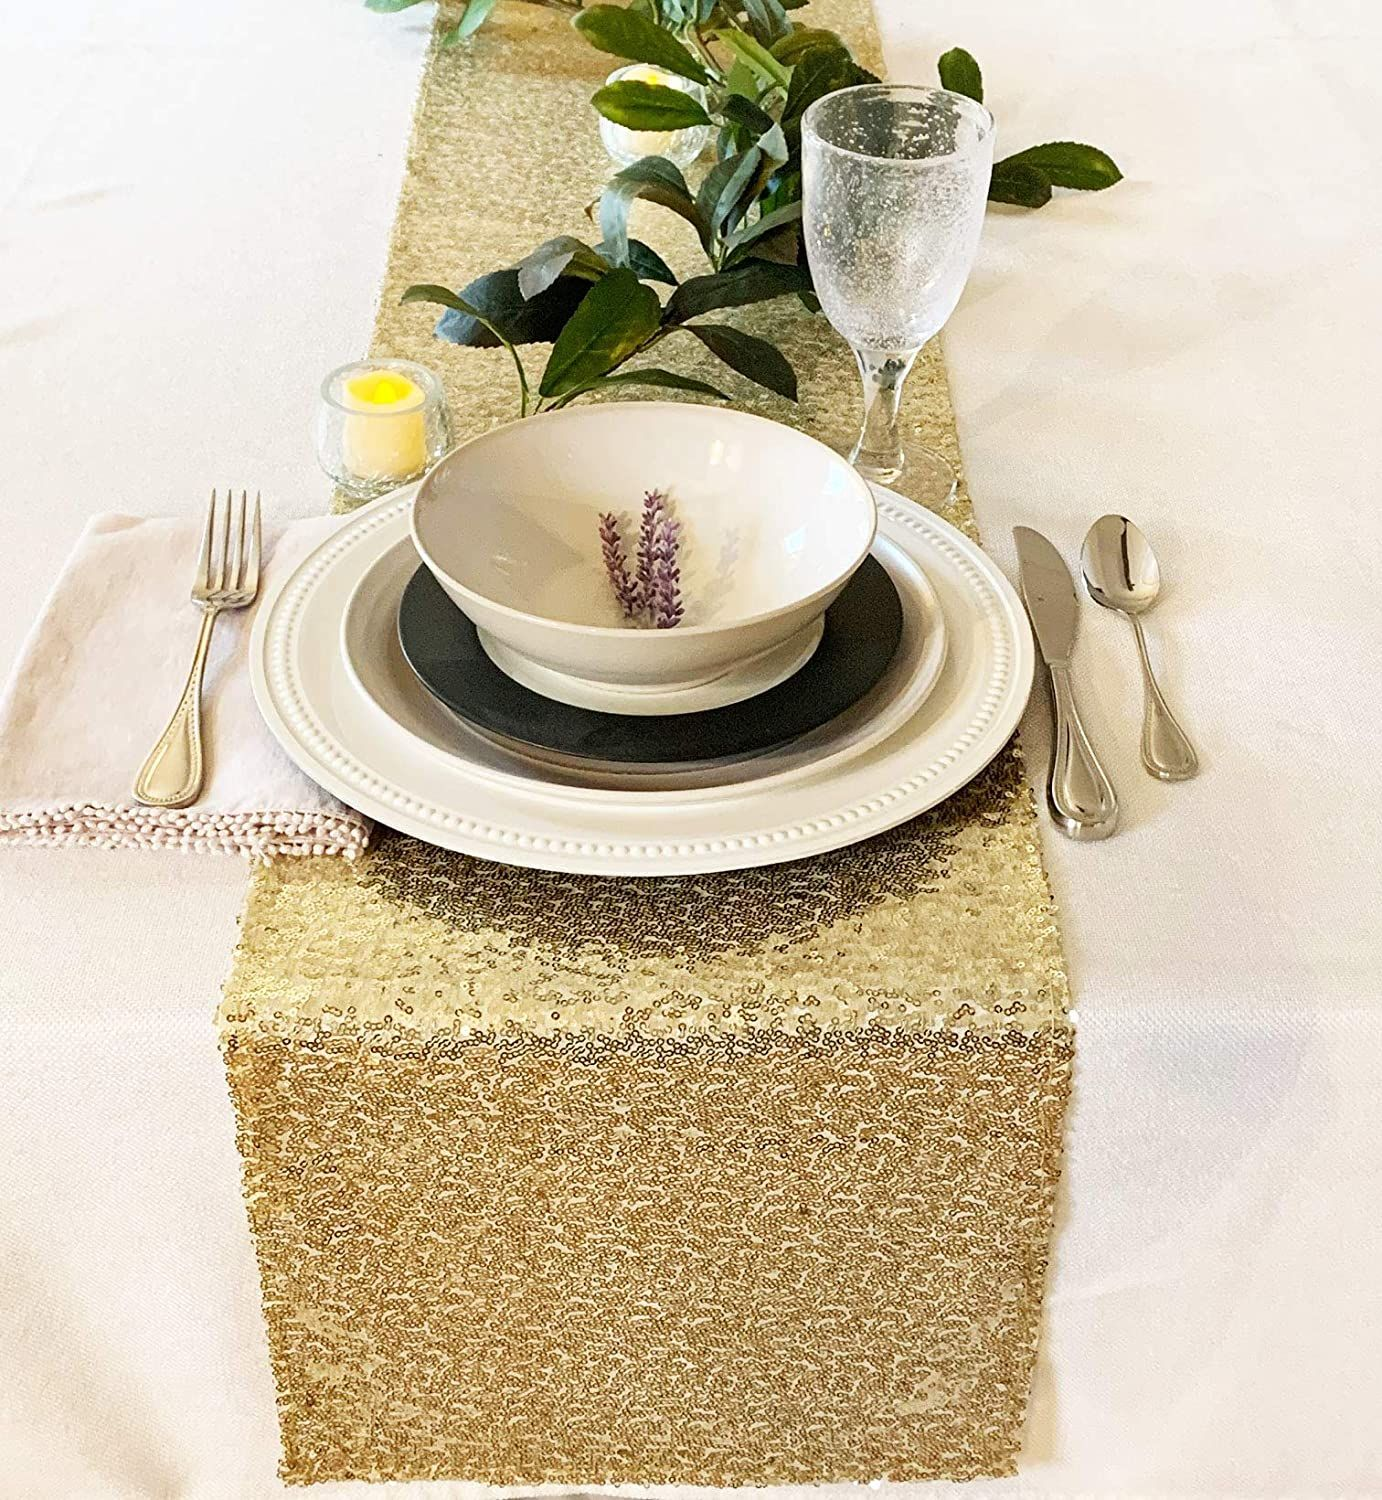 Gold Sequin Table Runners Set Of 10 Gold Table Runners Sequin Table Runner Gold Sequin Table Runner